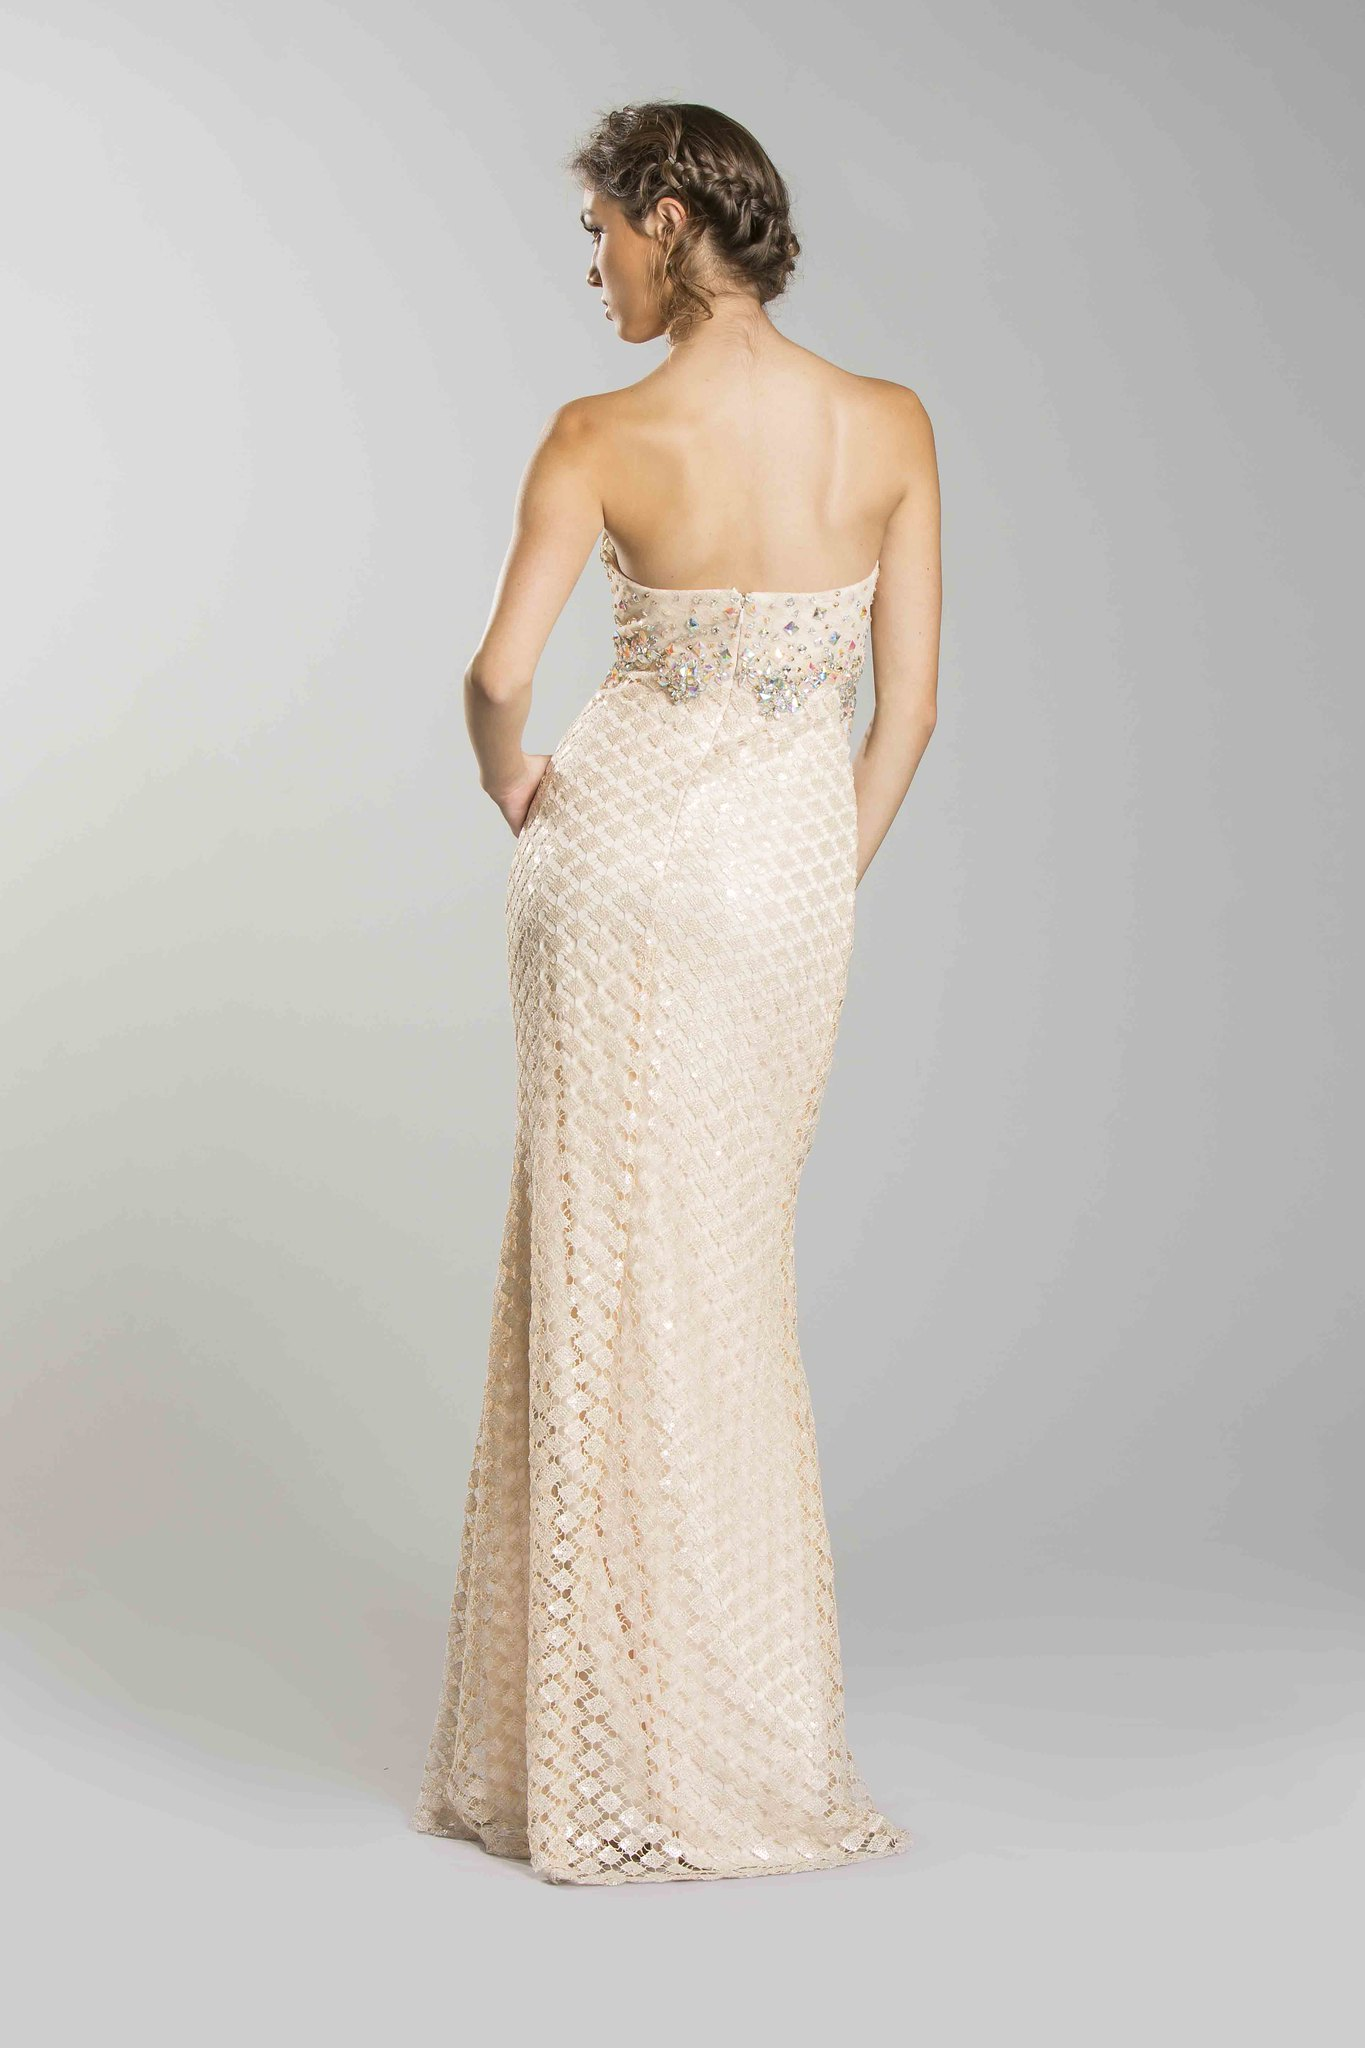 Champagne Beaded Form Fitting Formal Prom Dress Wedding